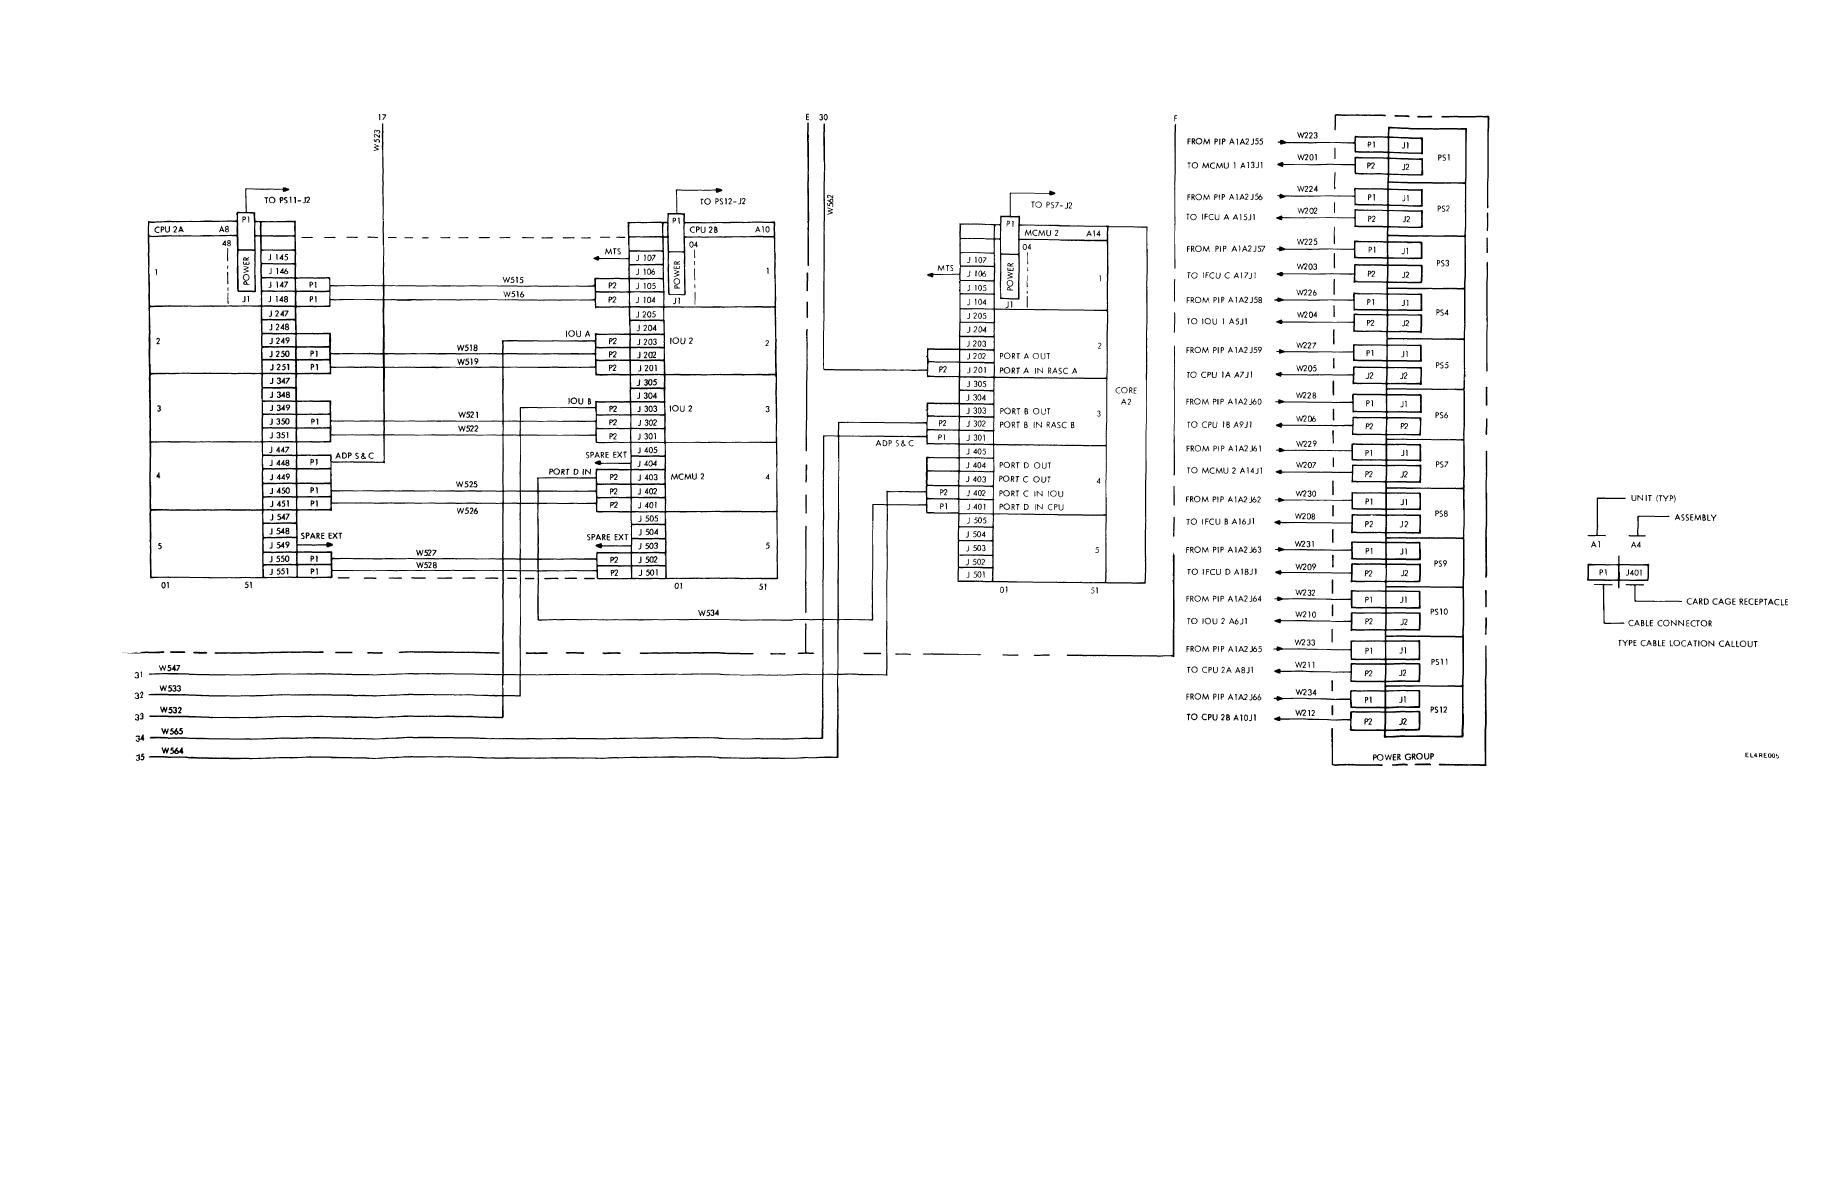 Figure Fo 5 Mscpg Cable Interconnection Diagram Sheet 1